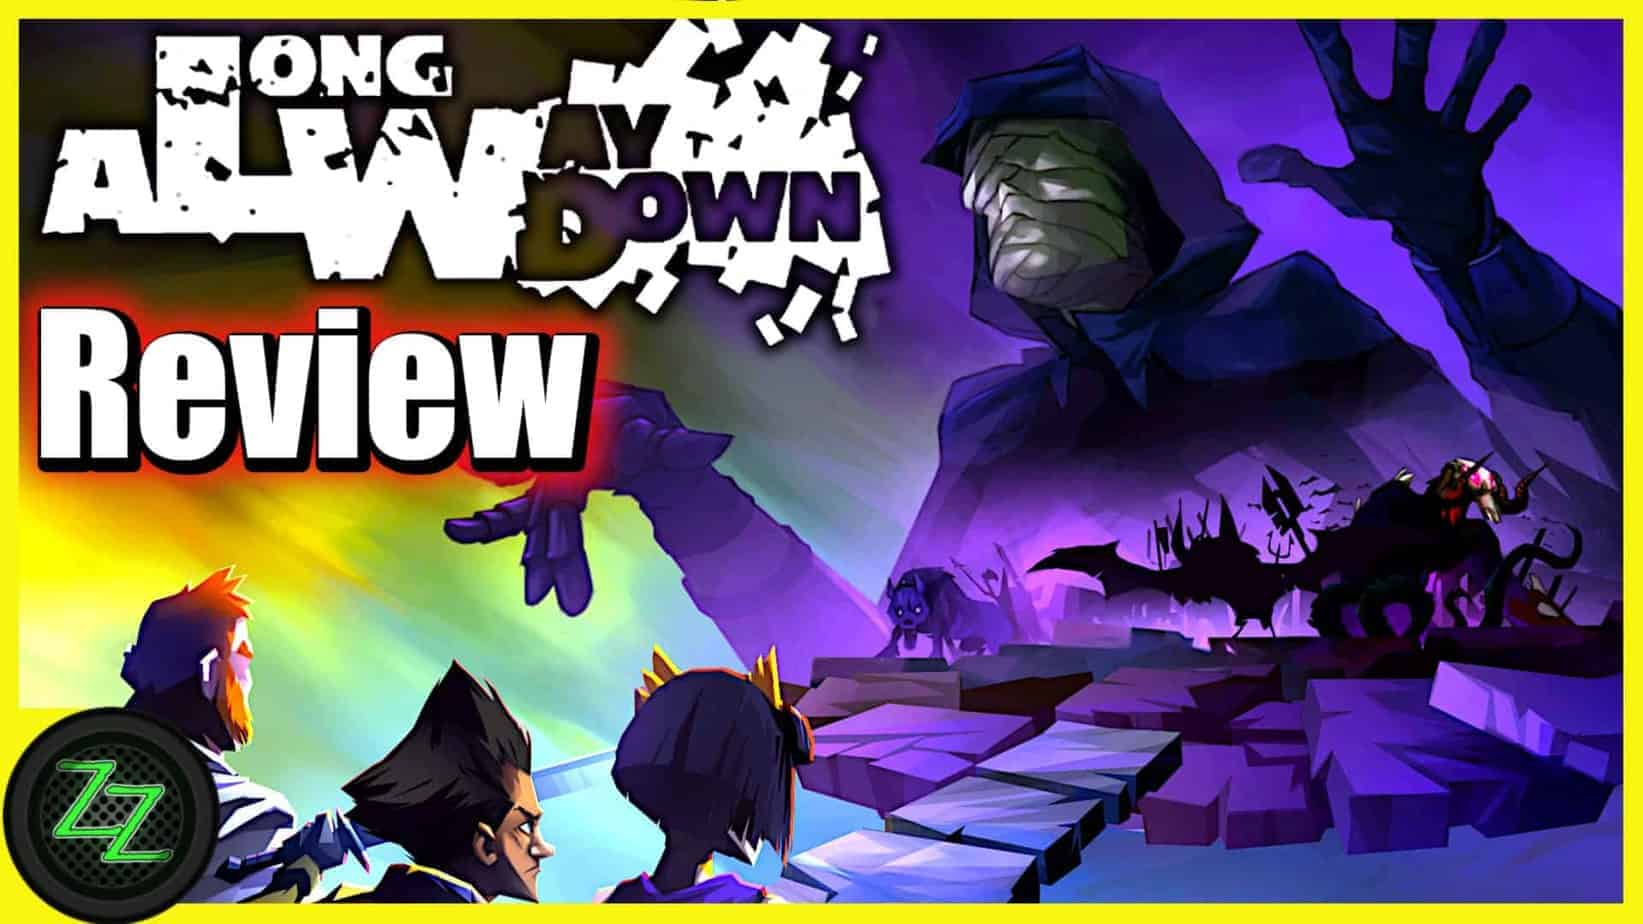 A Long Way Down Review (Game) turn-based Strategy Dungeon with Cards